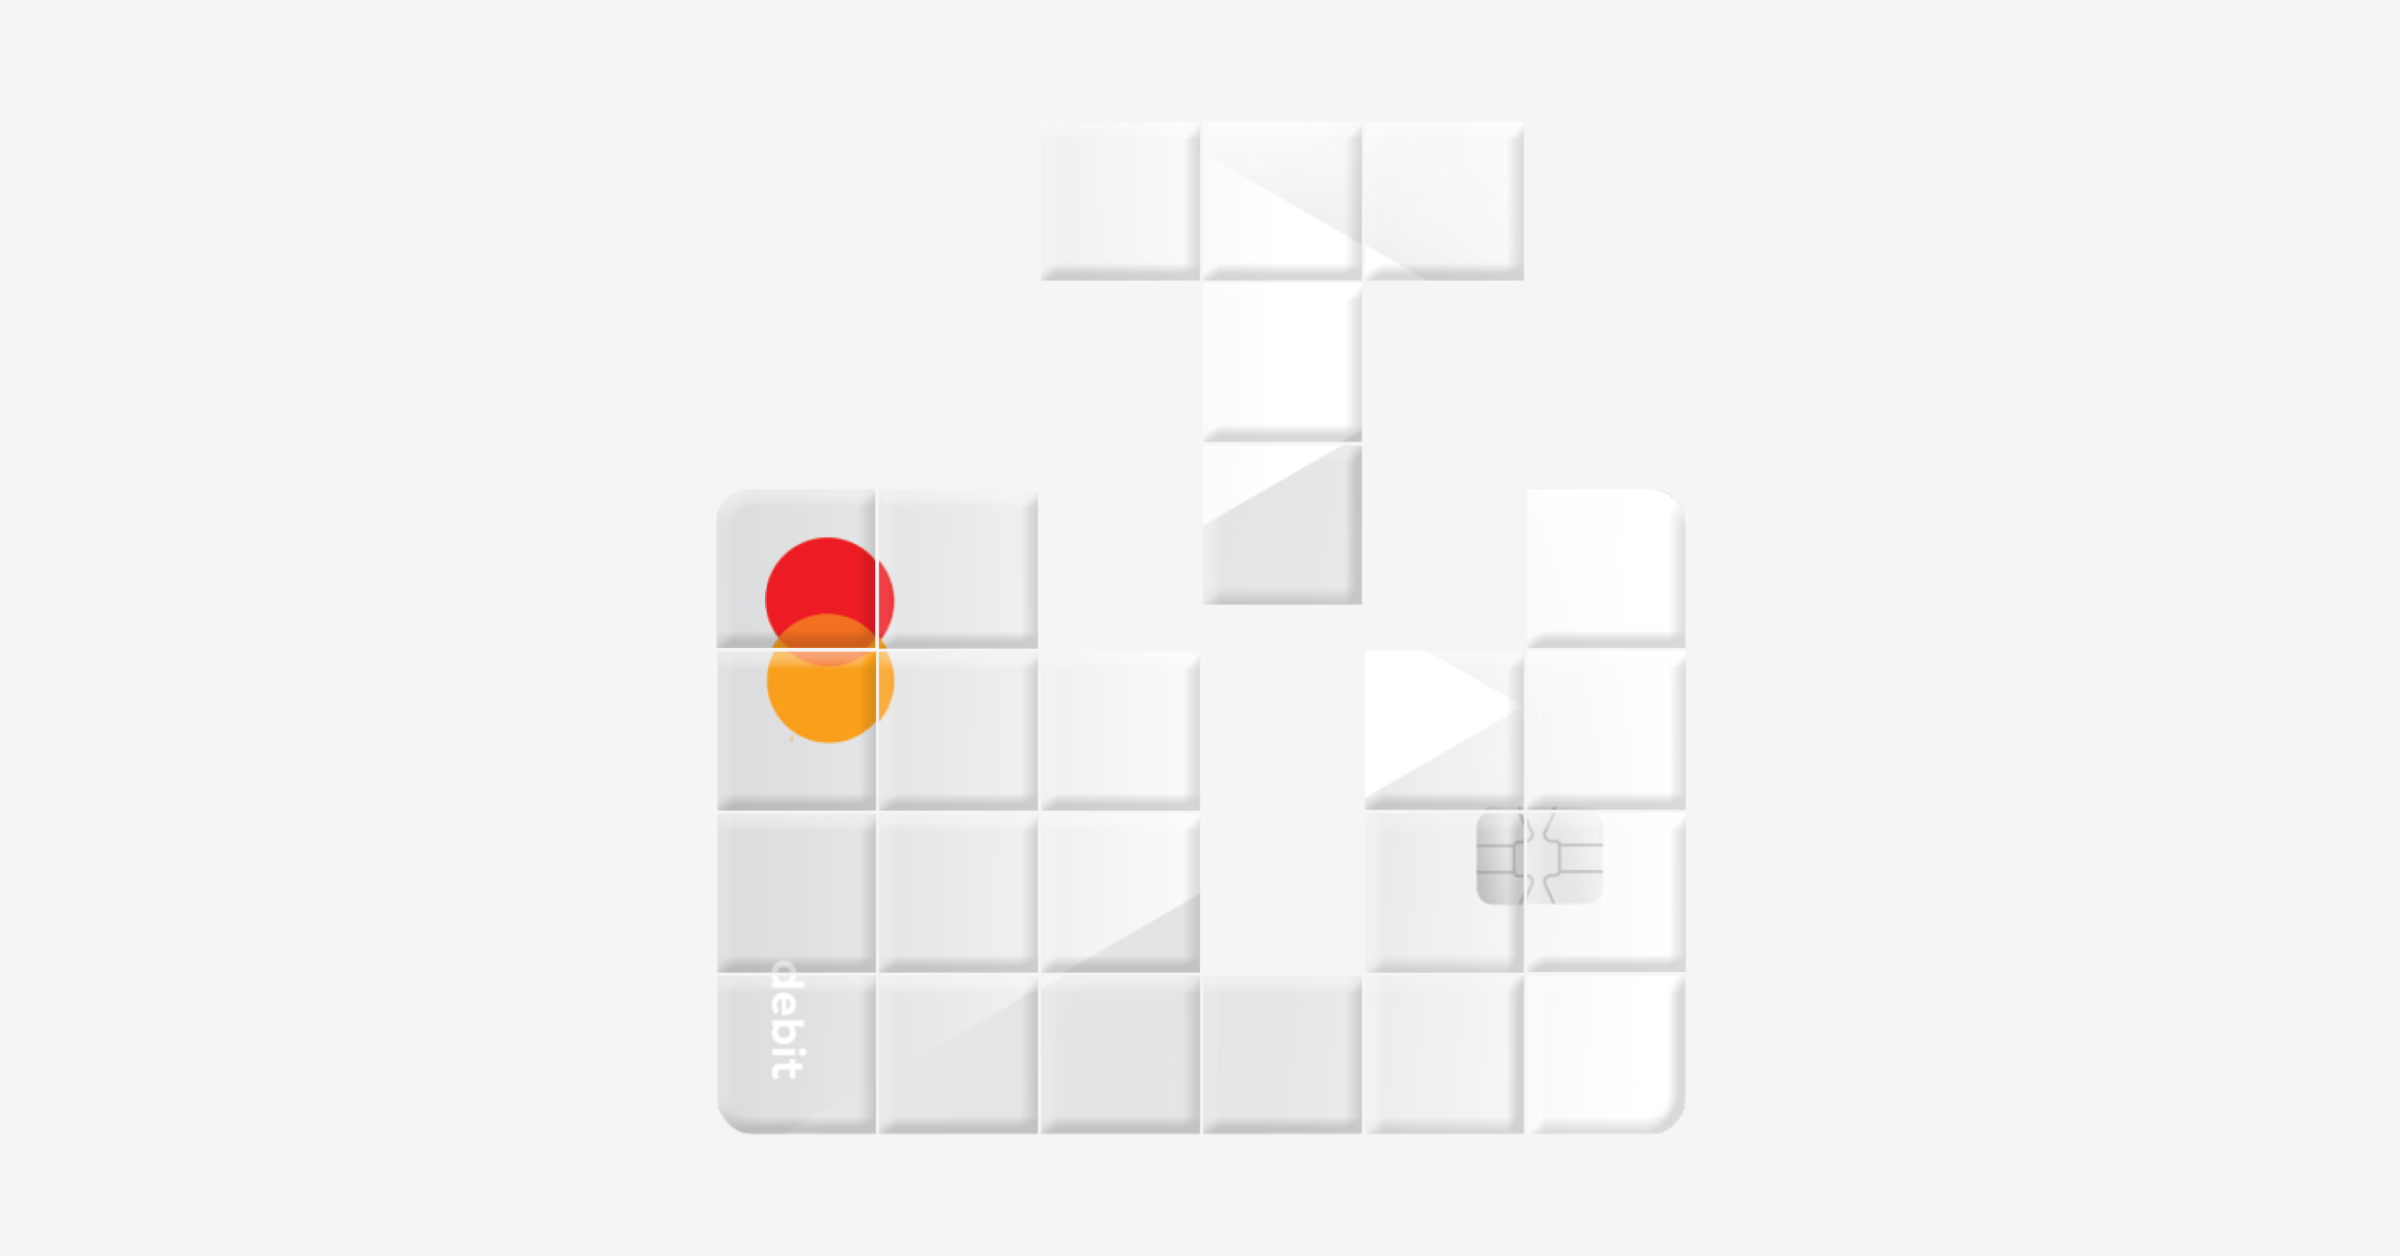 Pieces of a debit card falling into place like a game of tetris.